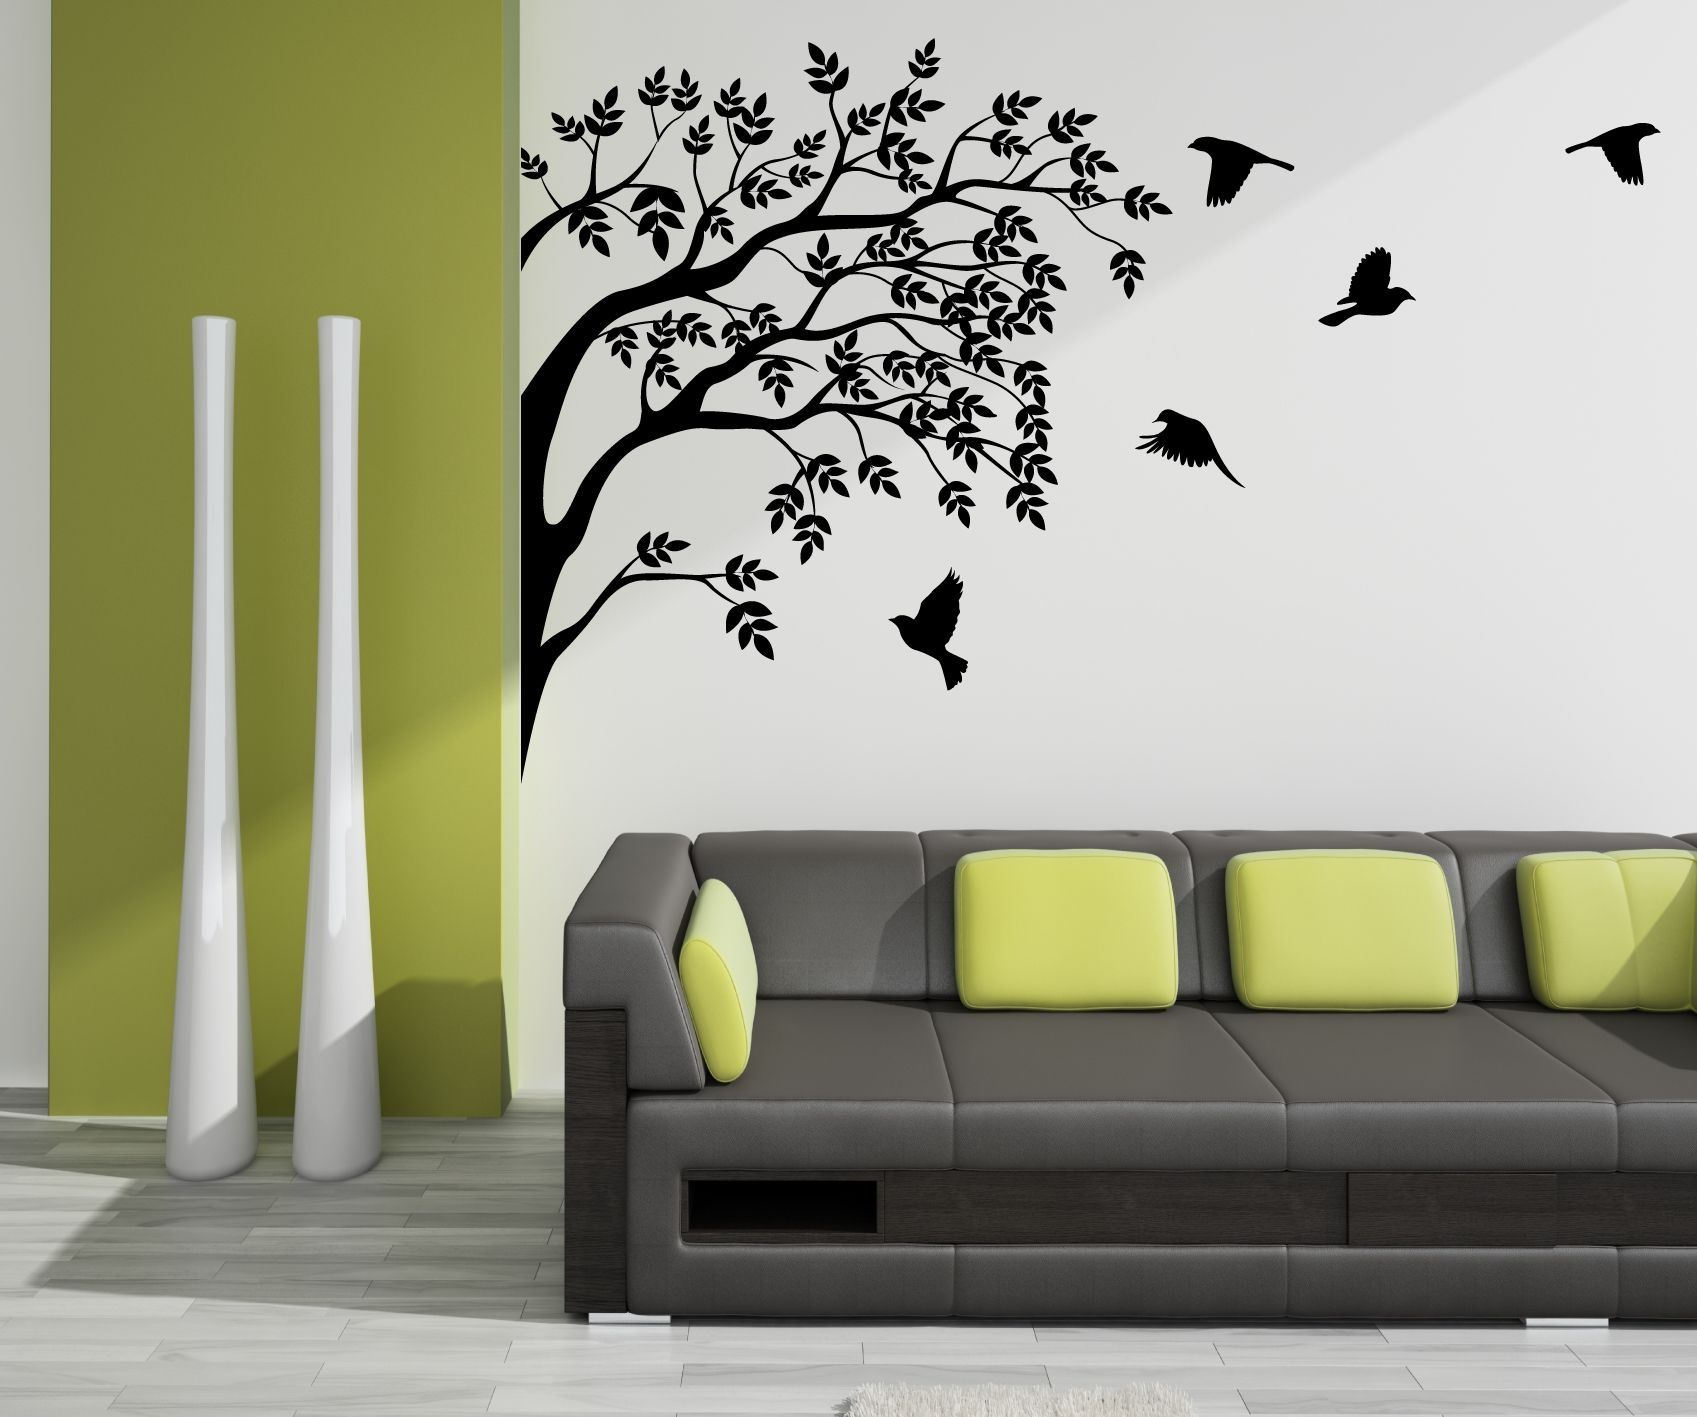 Vinyl wall decoration ideas umadepa pinterest wall